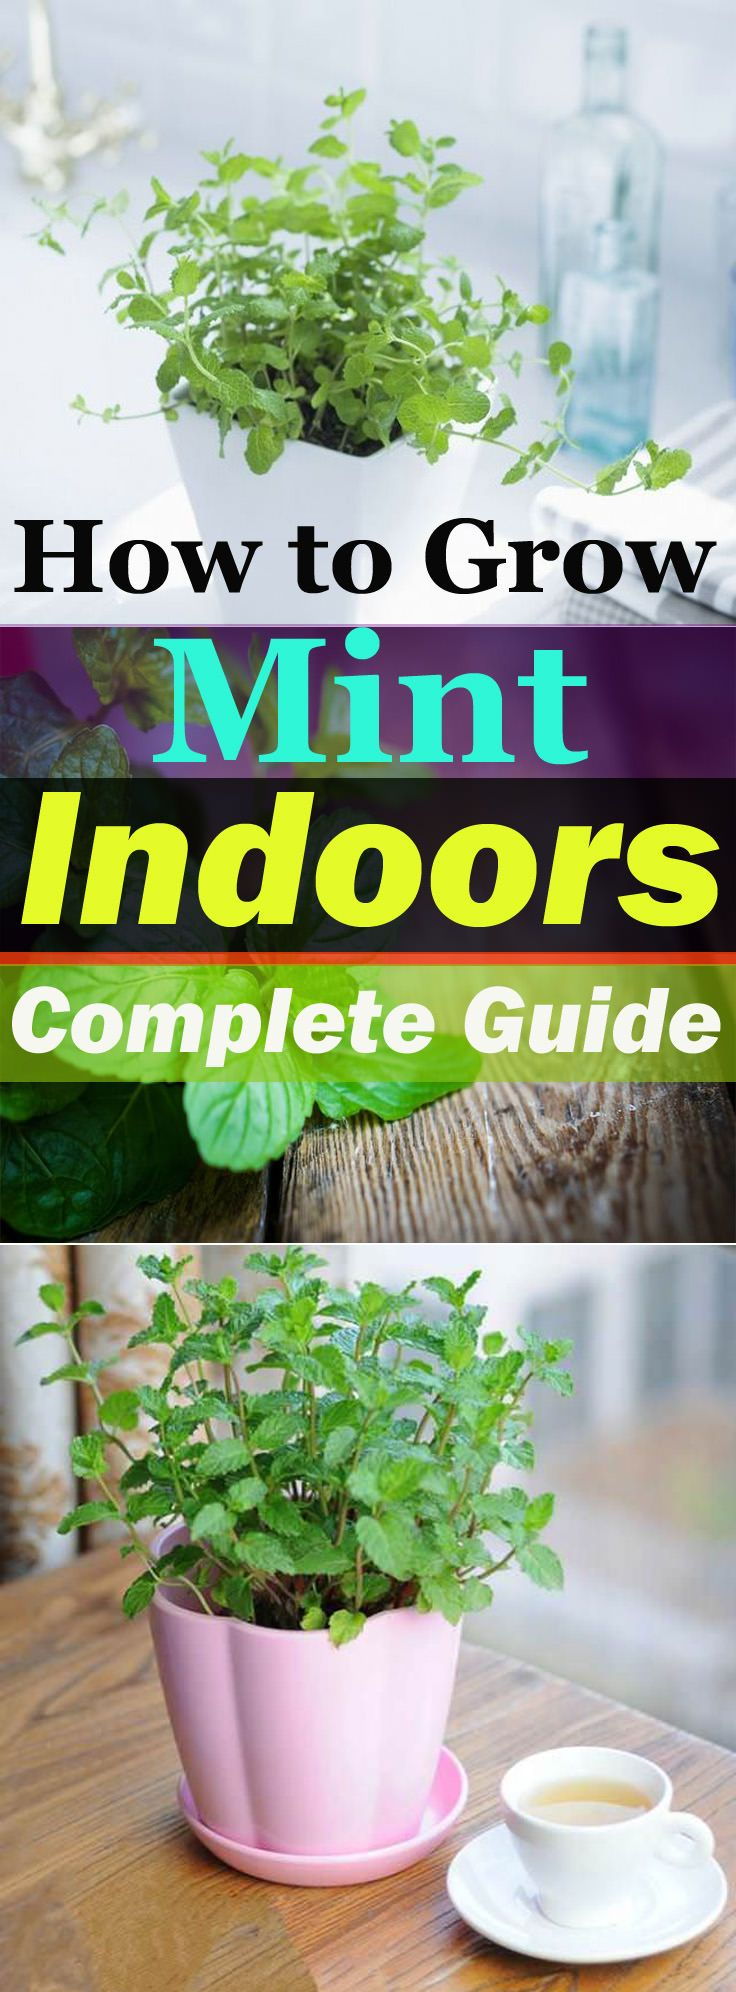 Growing Mint Indoors How To Care It Growing Mint Indoors Growing Mint Indoor Vegetable Gardening